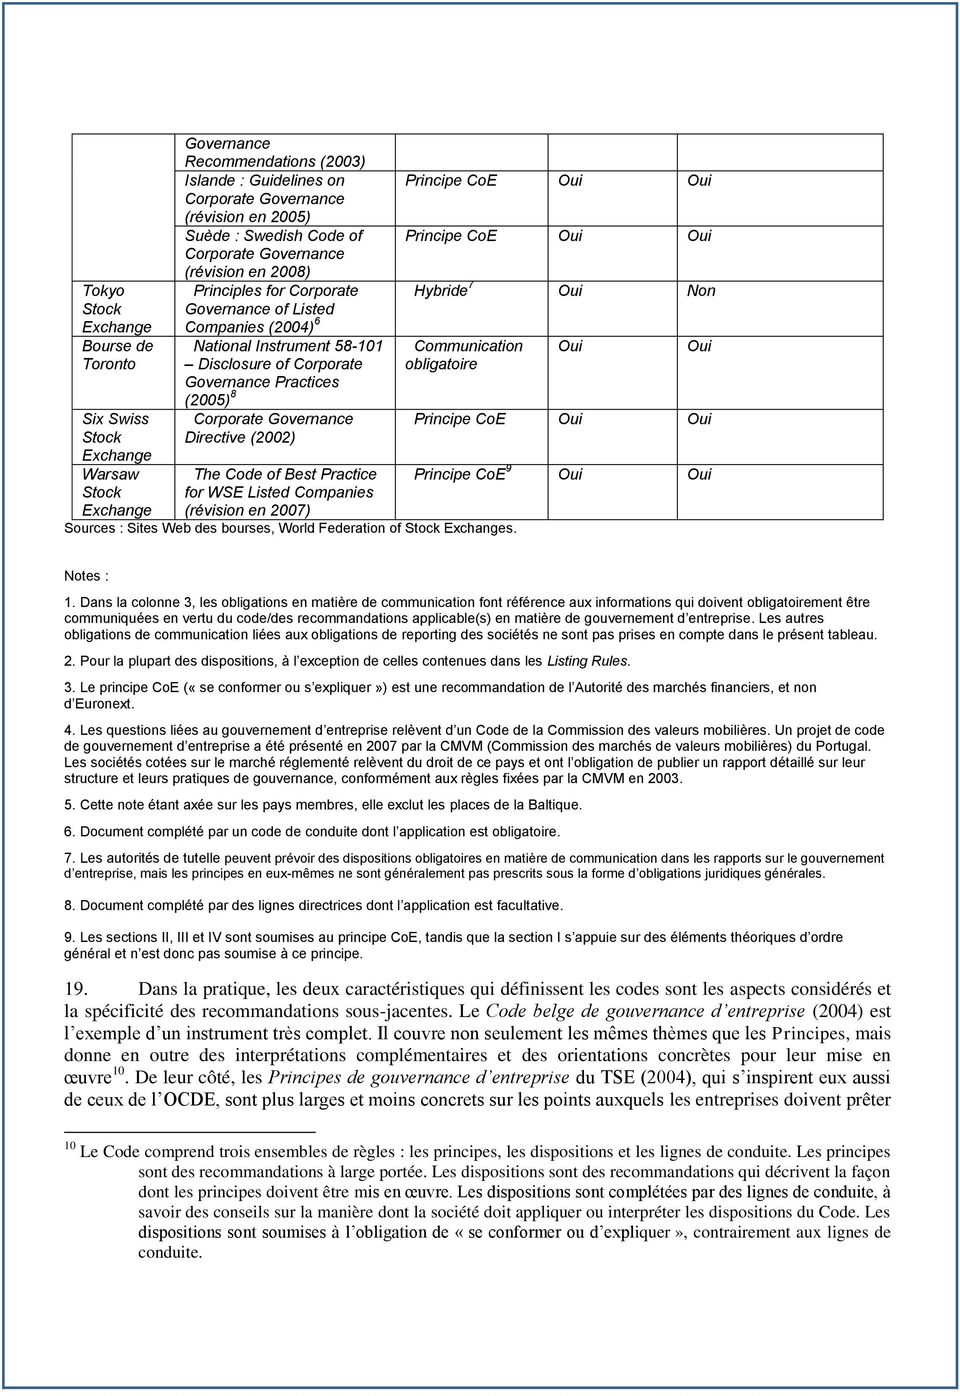 Corporate Governance Directive (2002) The Code of Best Practice for WSE Listed Companies (révision en 2007) Principe CoE Oui Oui Principe CoE Oui Oui Hybride 7 Oui Non Communication obligatoire